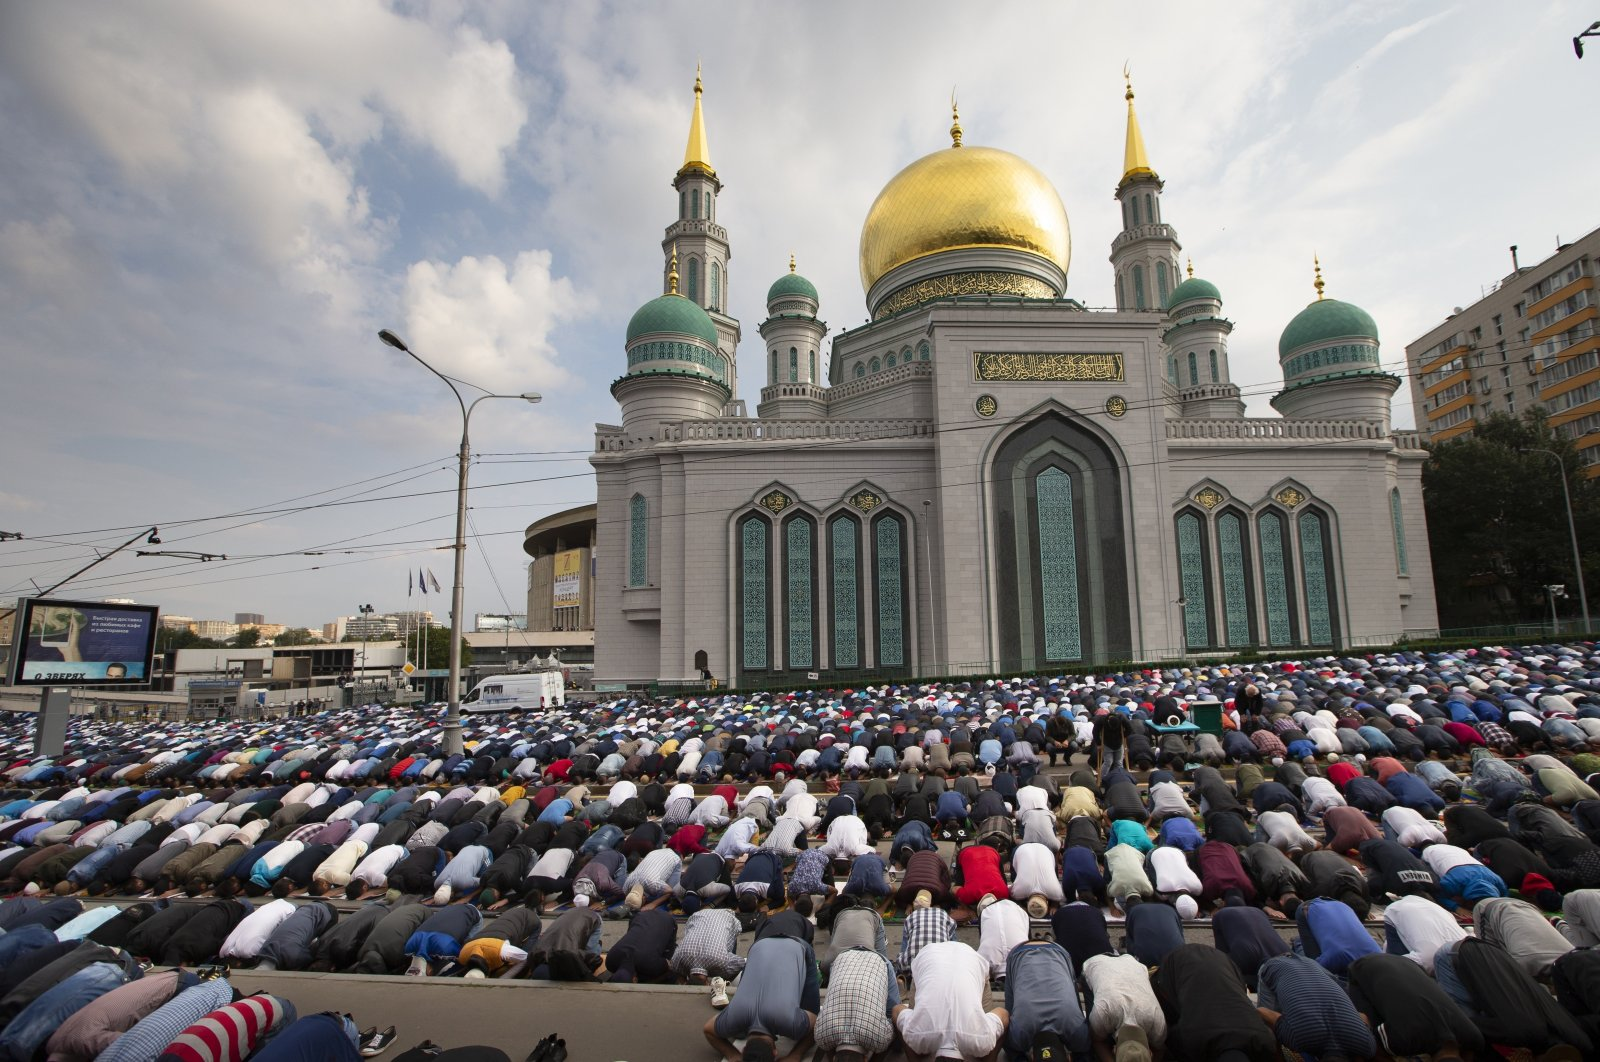 Muslims pray outside the Moscow Cathedral Mosque during celebrations of Eid al-Adha, a feast celebrated by Muslims worldwide, in Moscow, Russia, Aug. 21, 2018. (AP Photo)